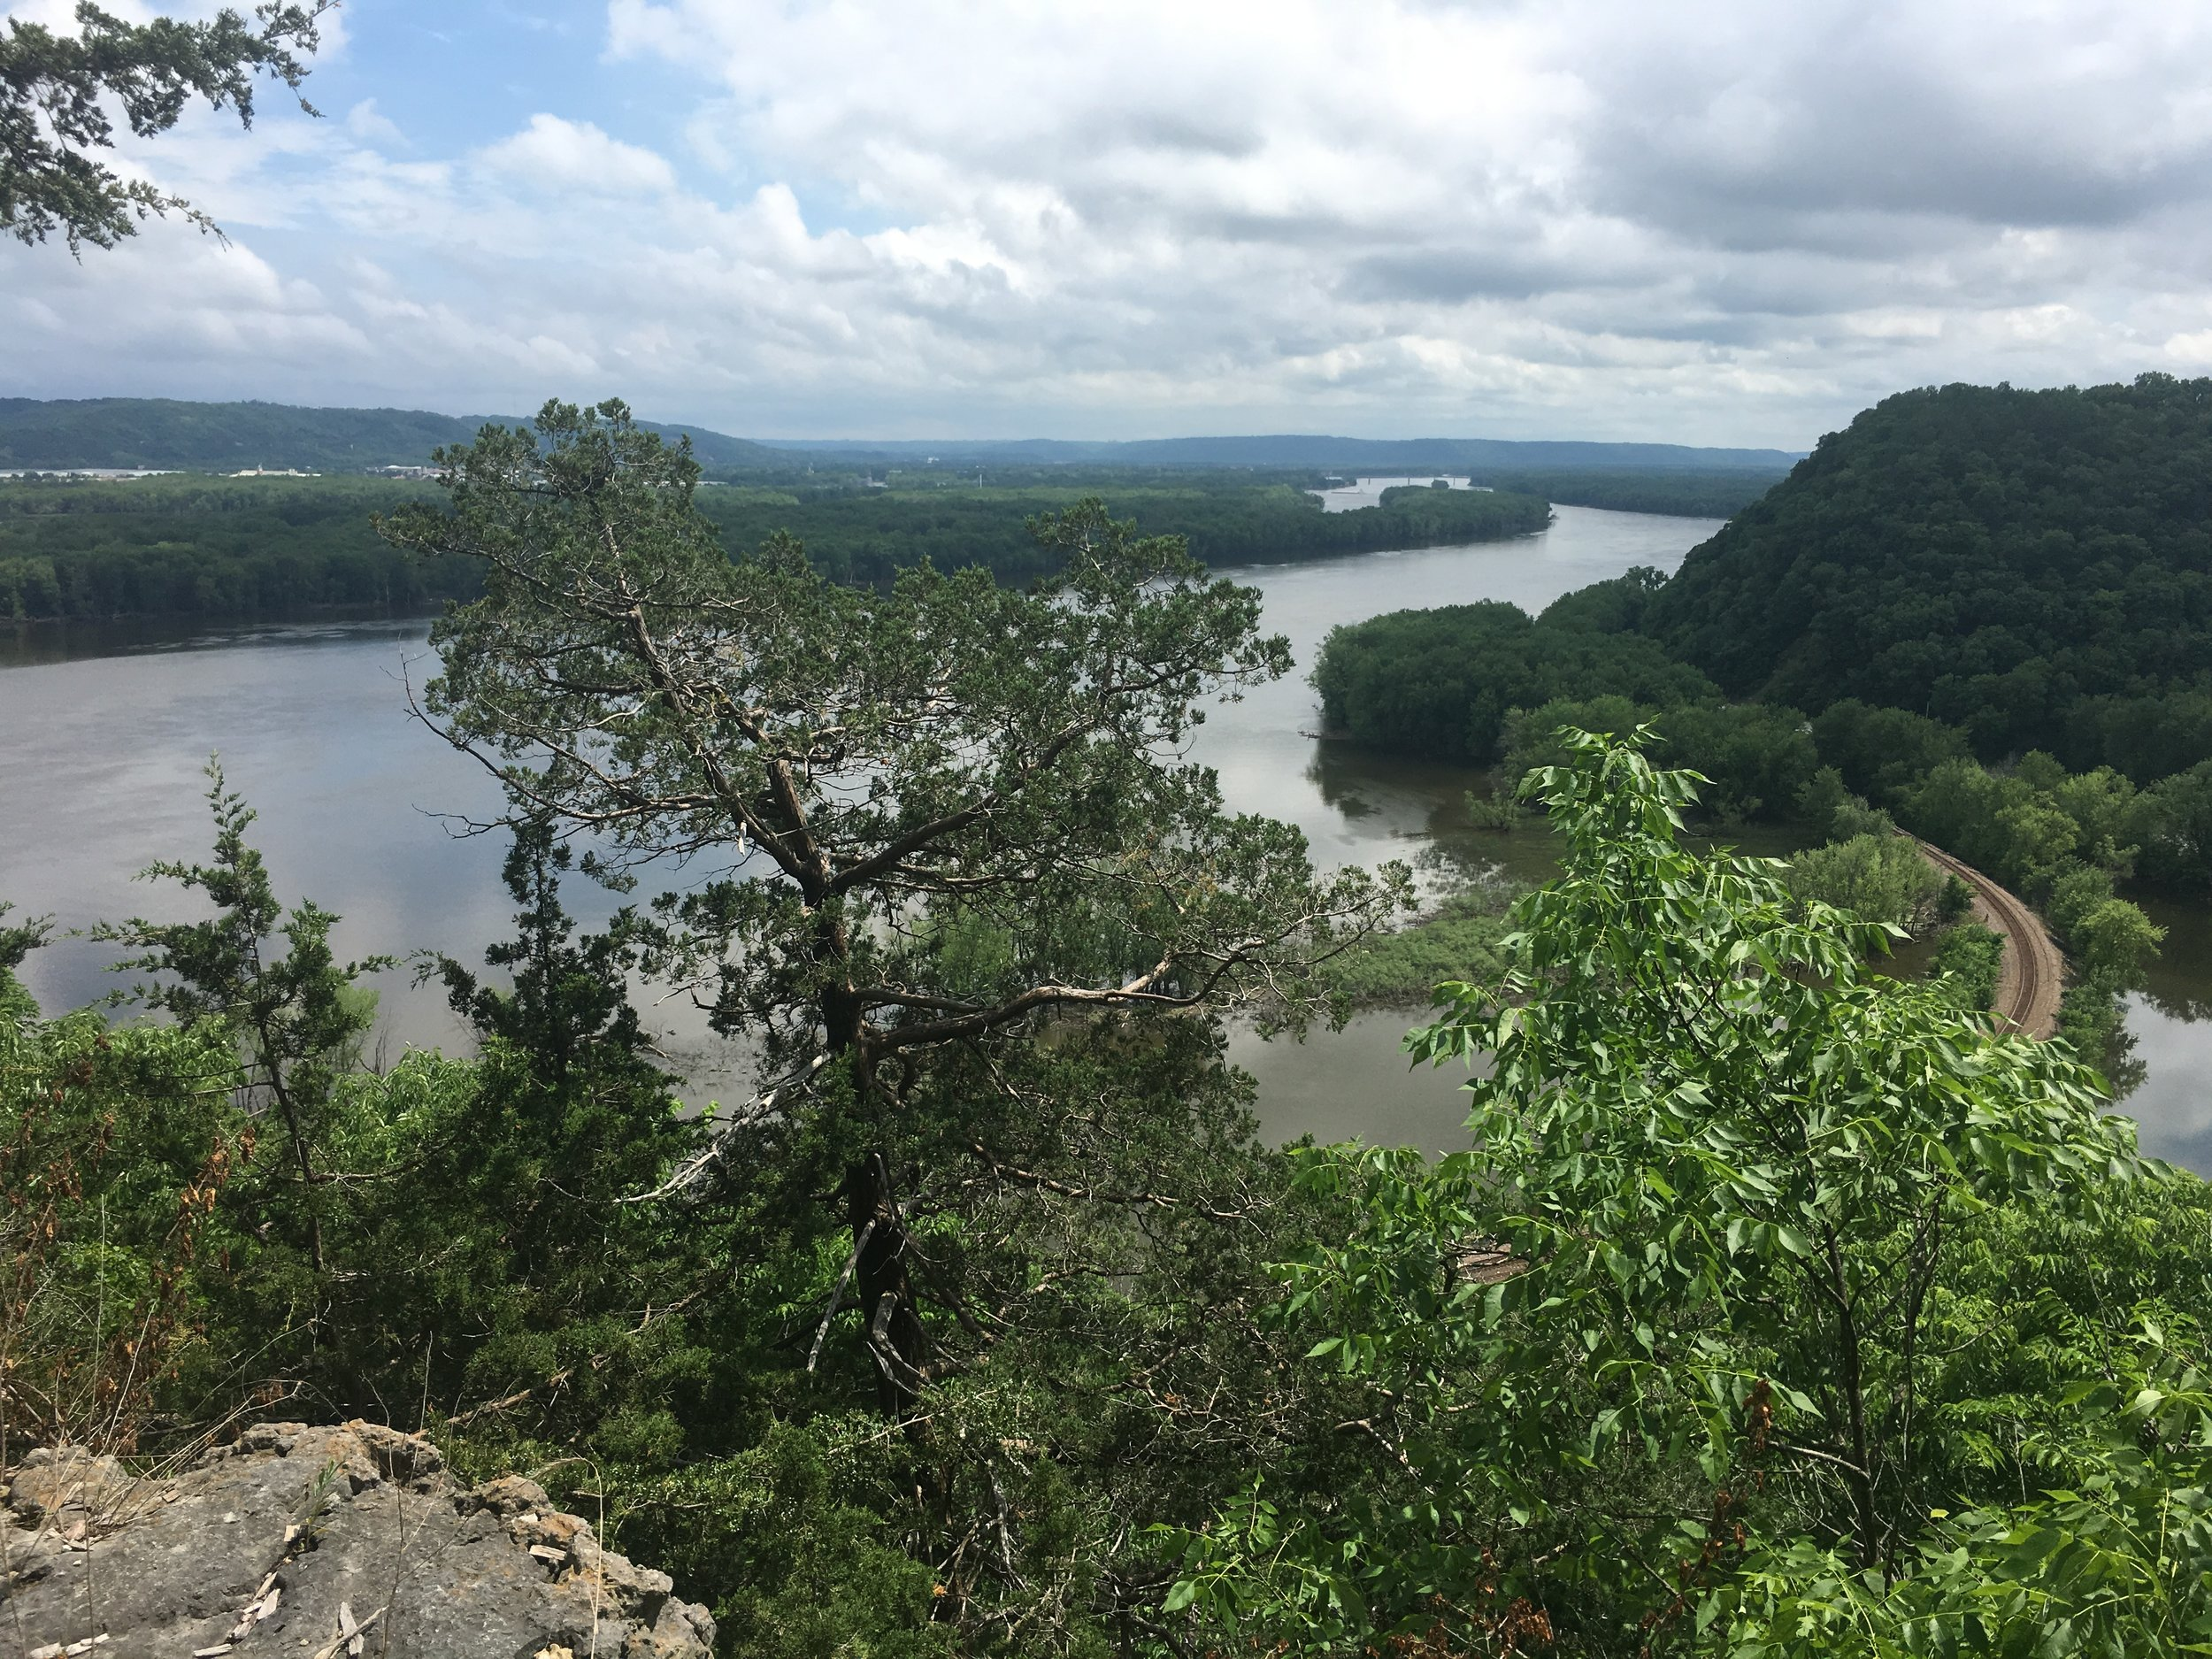 From Effigy Mounds NP